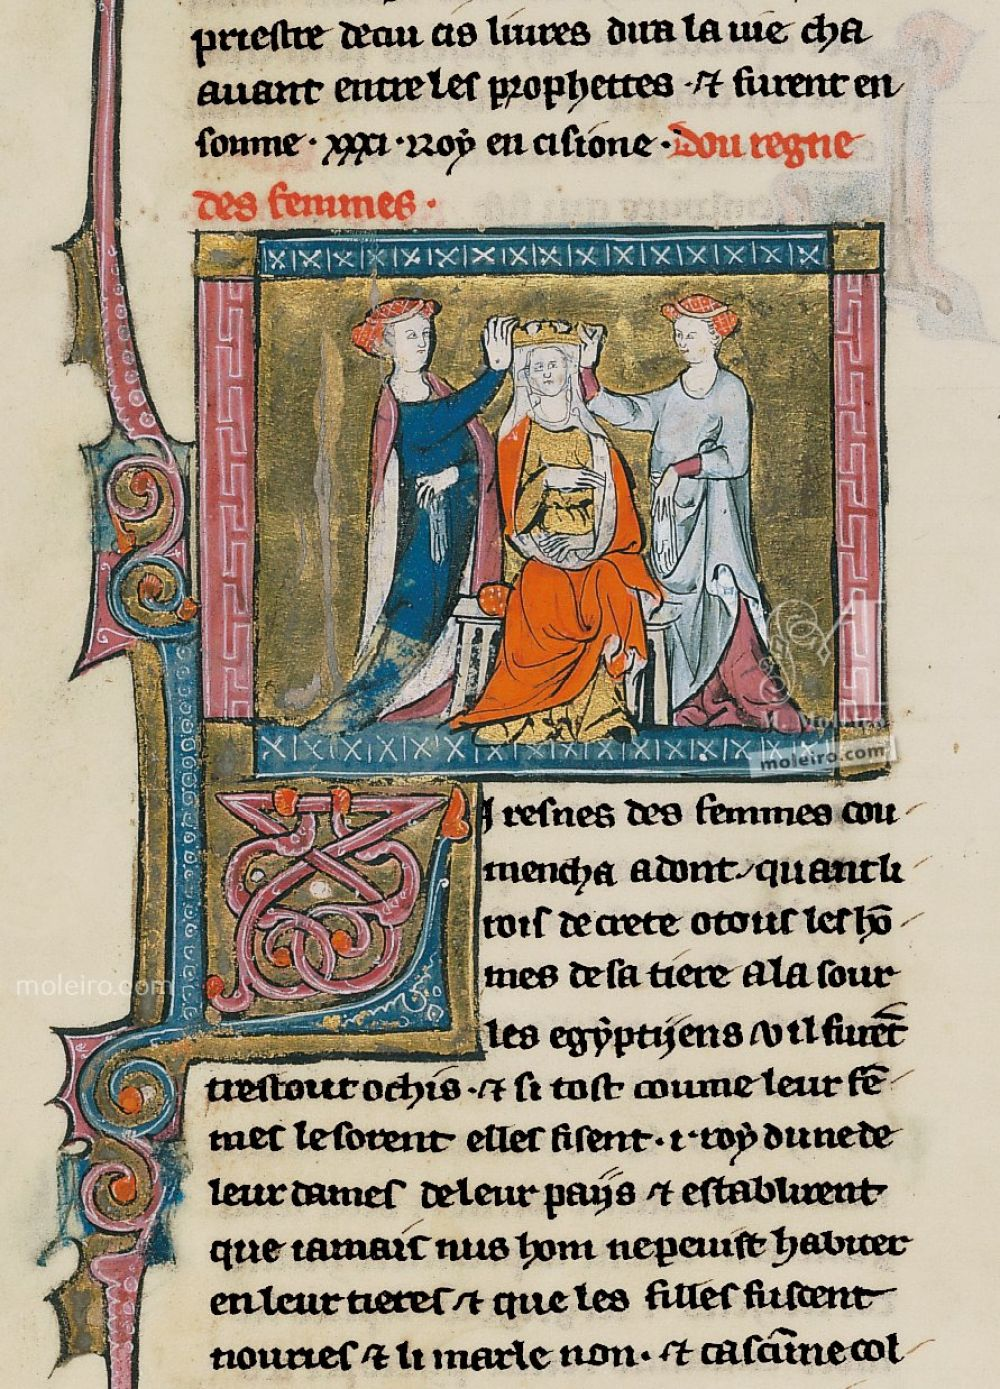 Book of Treasures f. 13, Penthesilea, queen of the Amazons, with her ladies-in-waiting